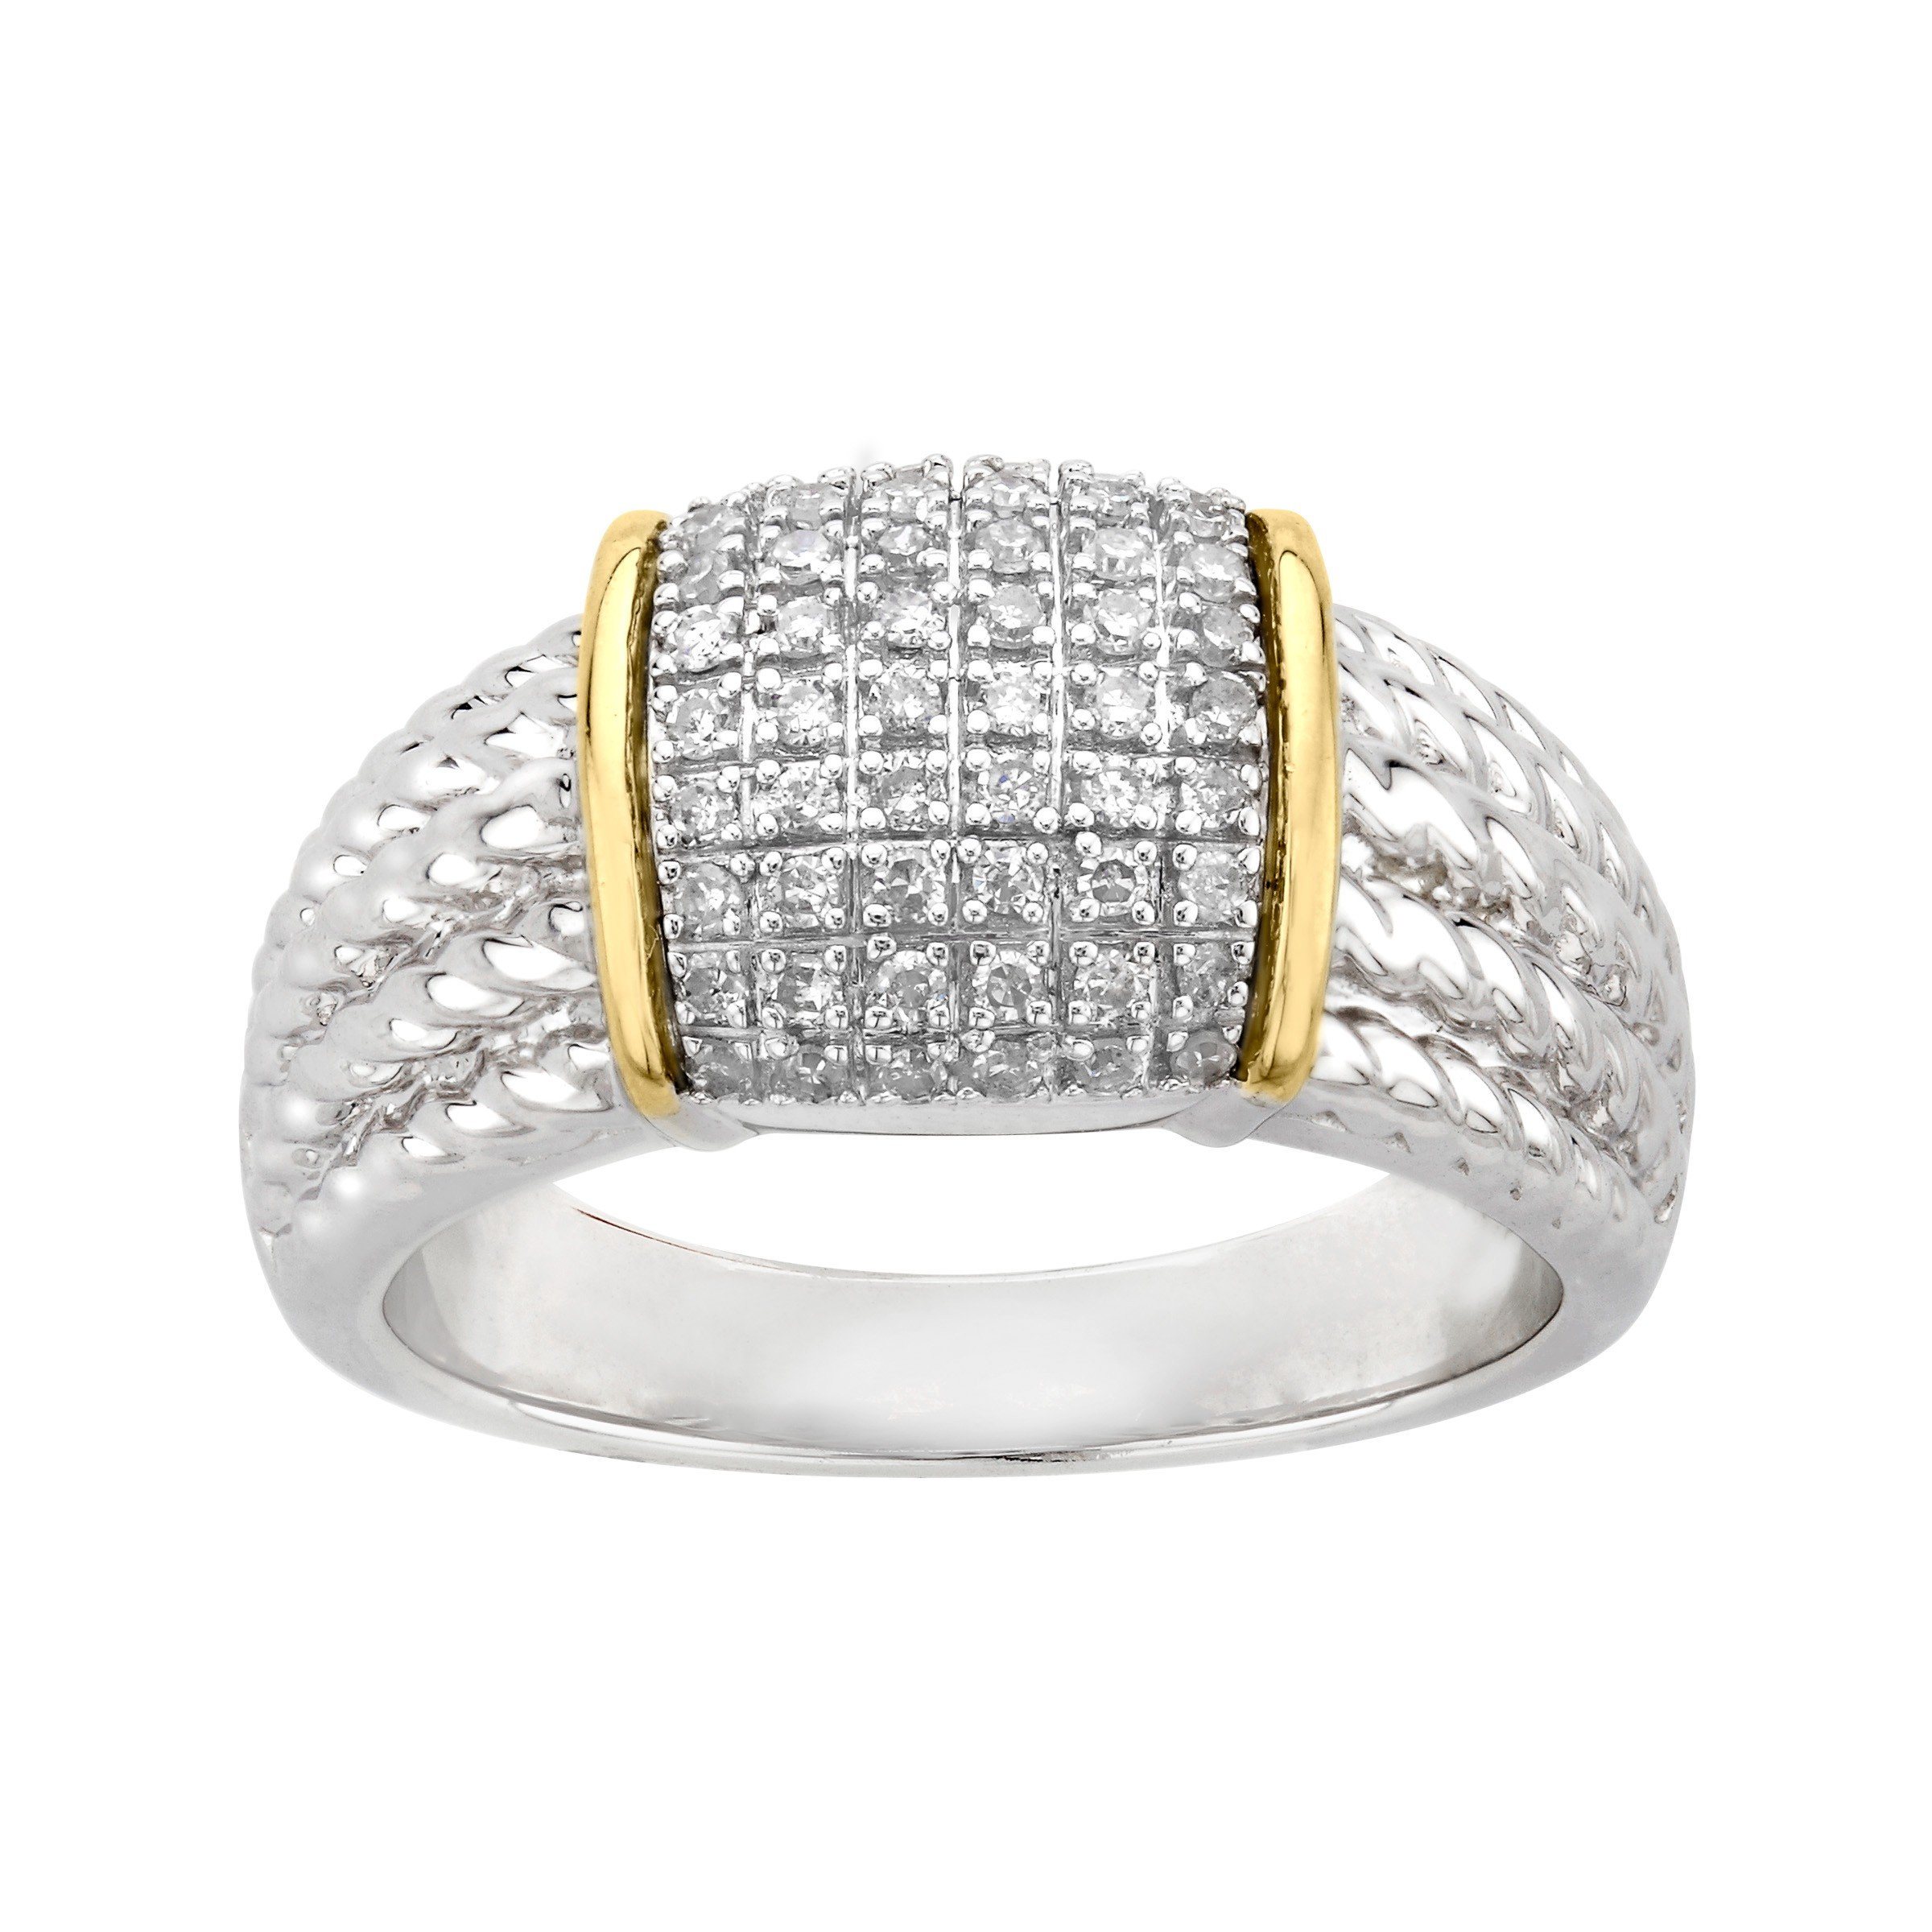 1/4 ct Diamond Pave Ring in Sterling Silver & 14K Gold Size 7